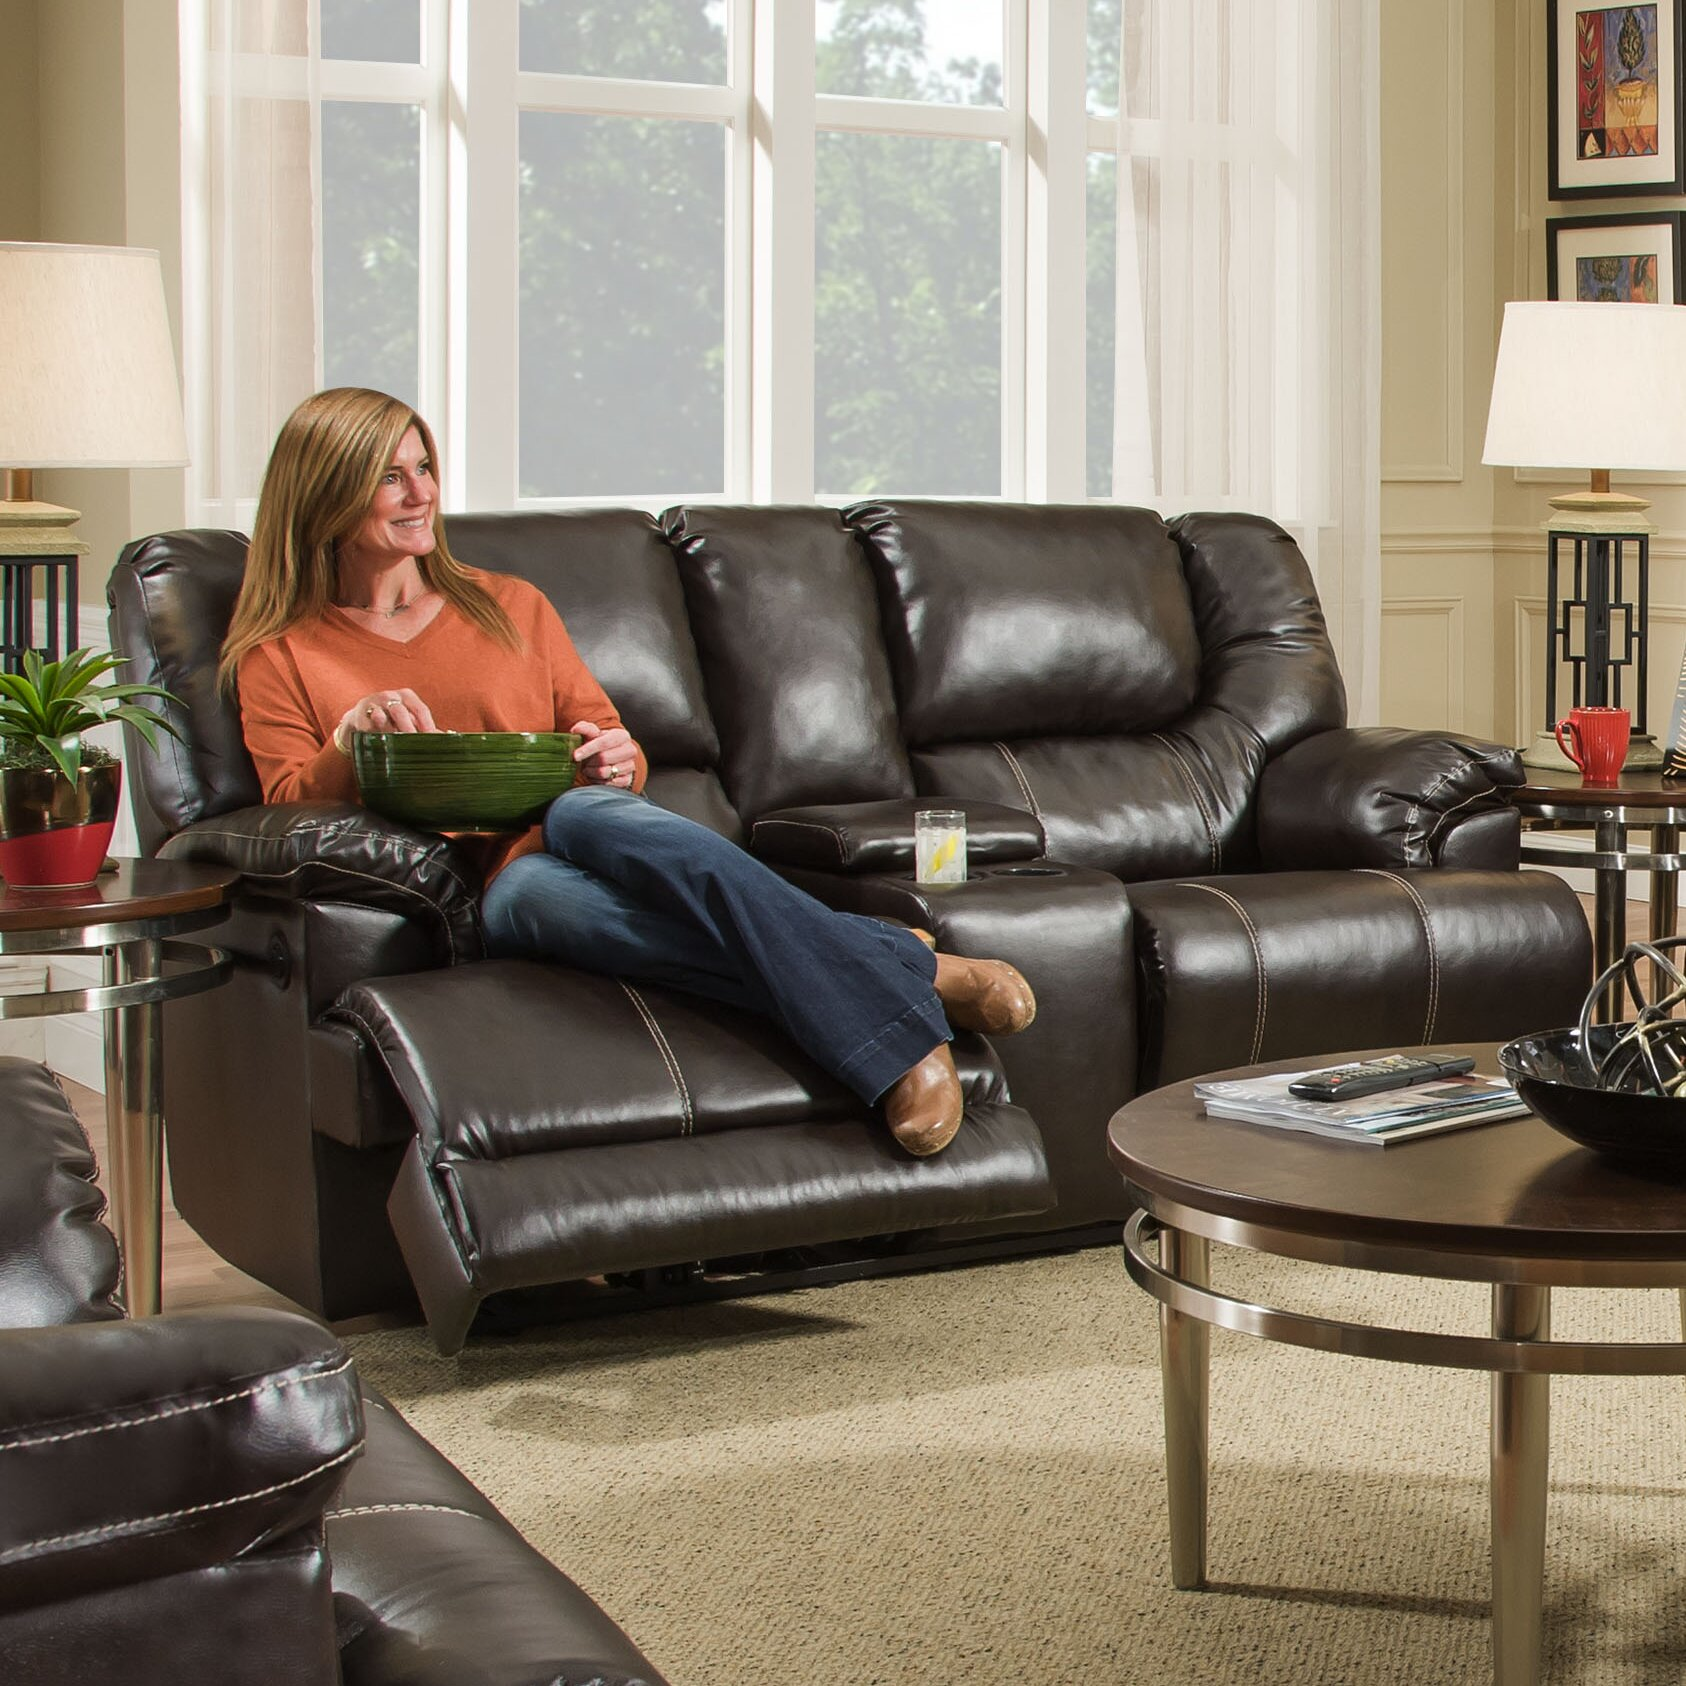 Lovely Pomona Sofa Group Brownsvilleclaimhelp